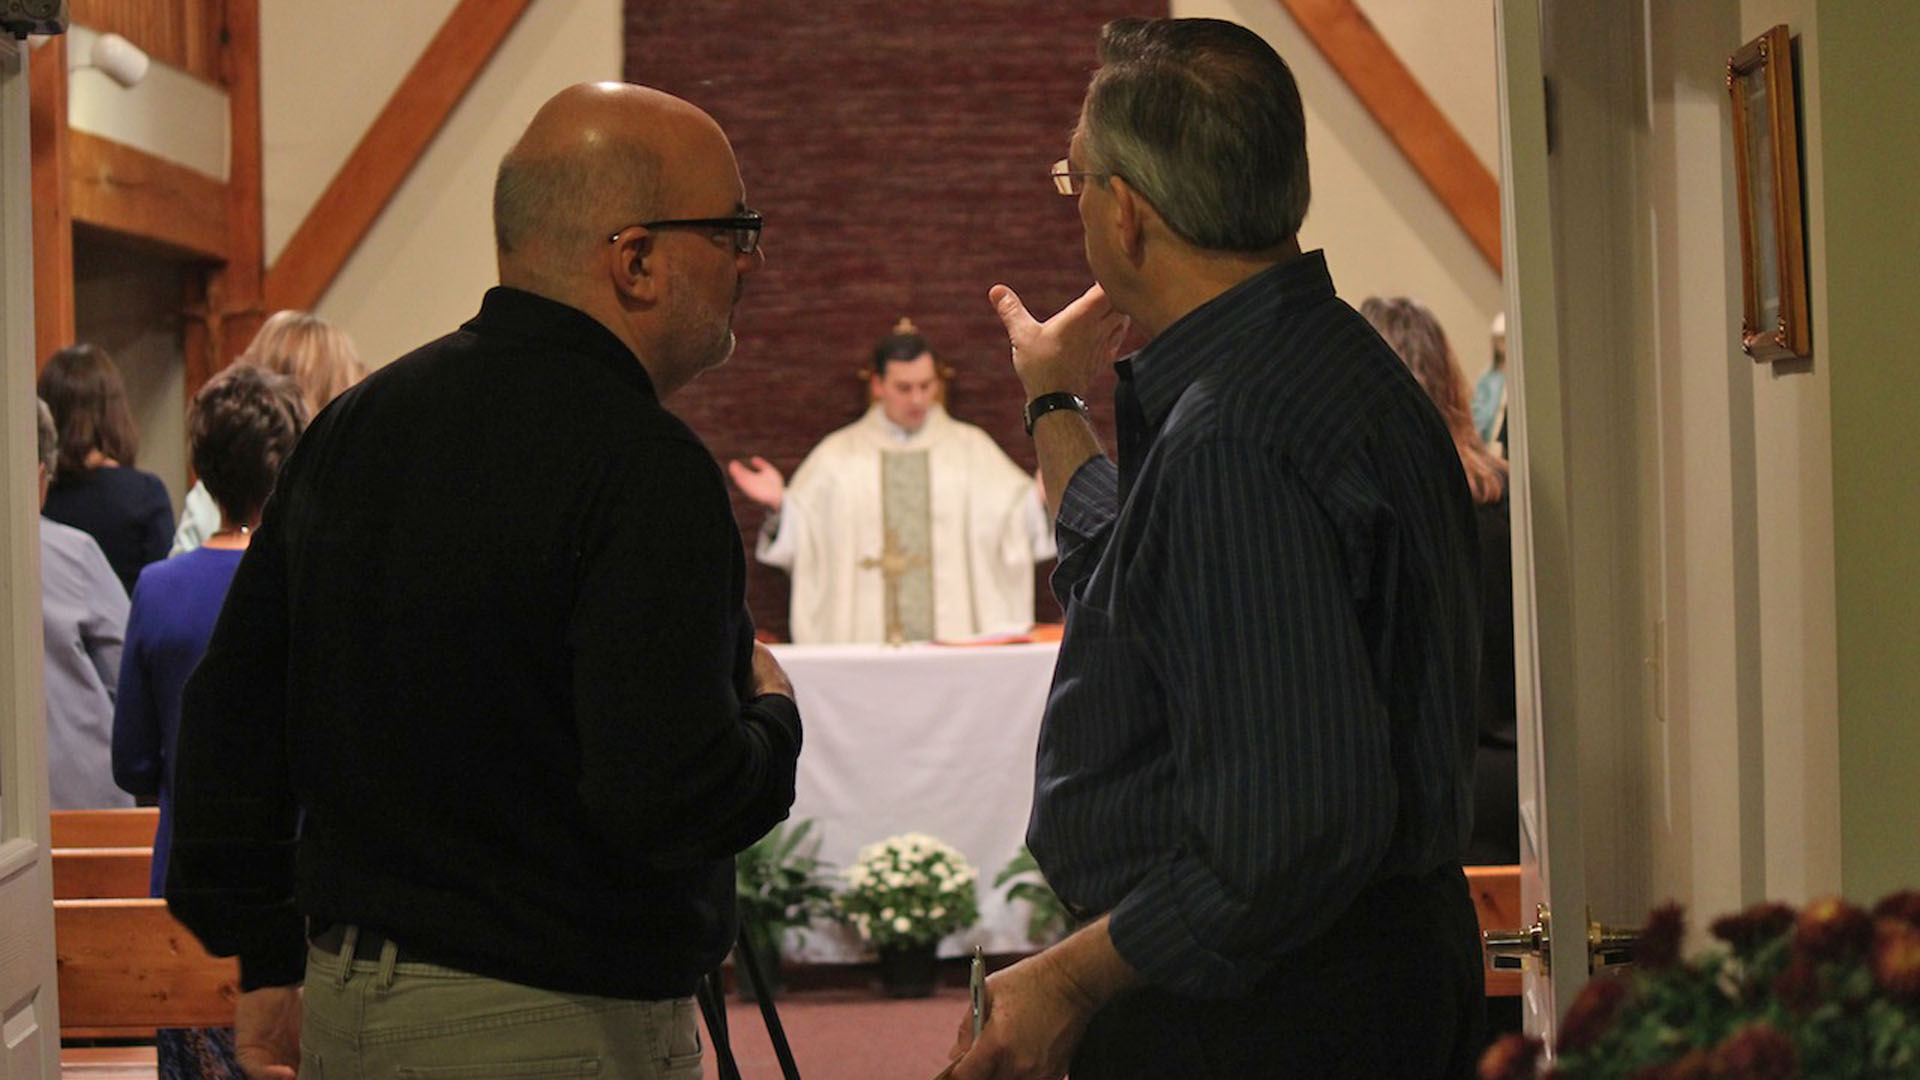 directing fr john in background.jpg